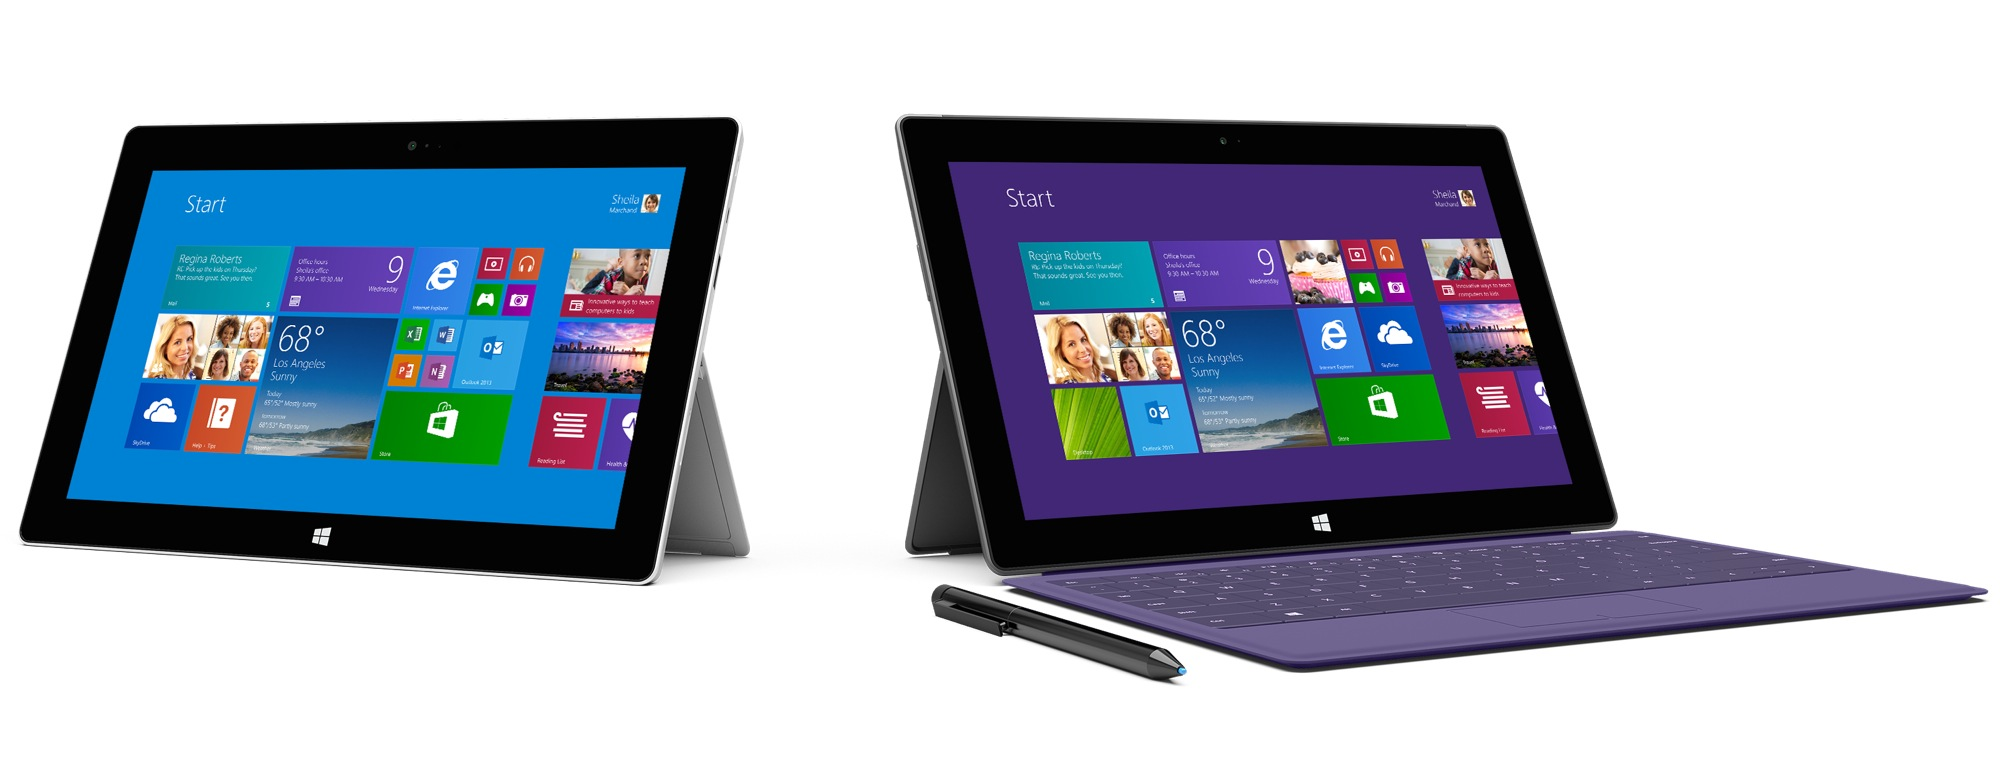 microsoft reveals new surface 2 and surface pro 2 tablets. Black Bedroom Furniture Sets. Home Design Ideas